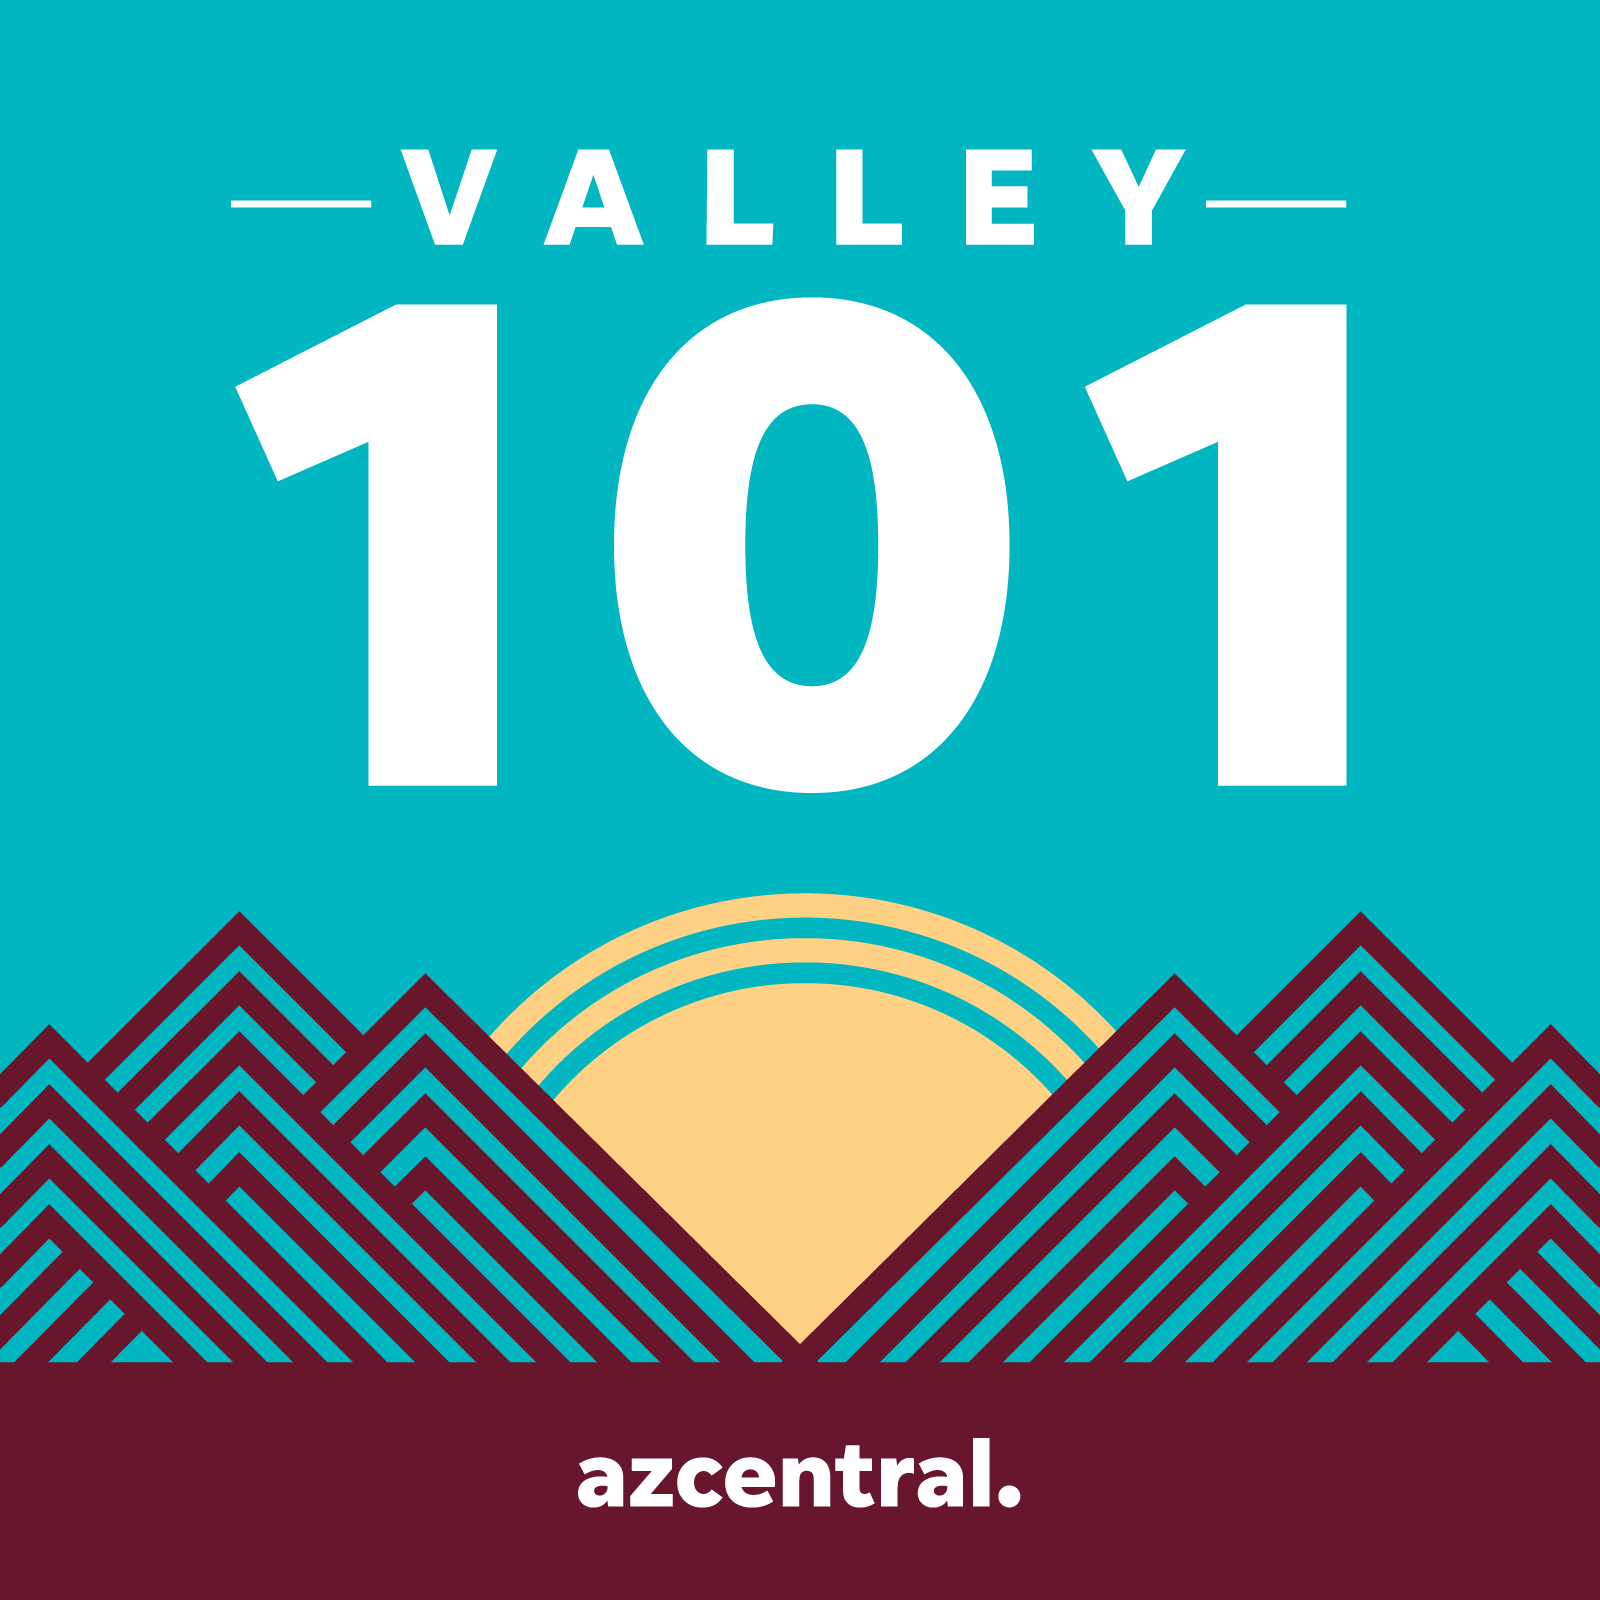 Welcome to Valley 101, the podcast